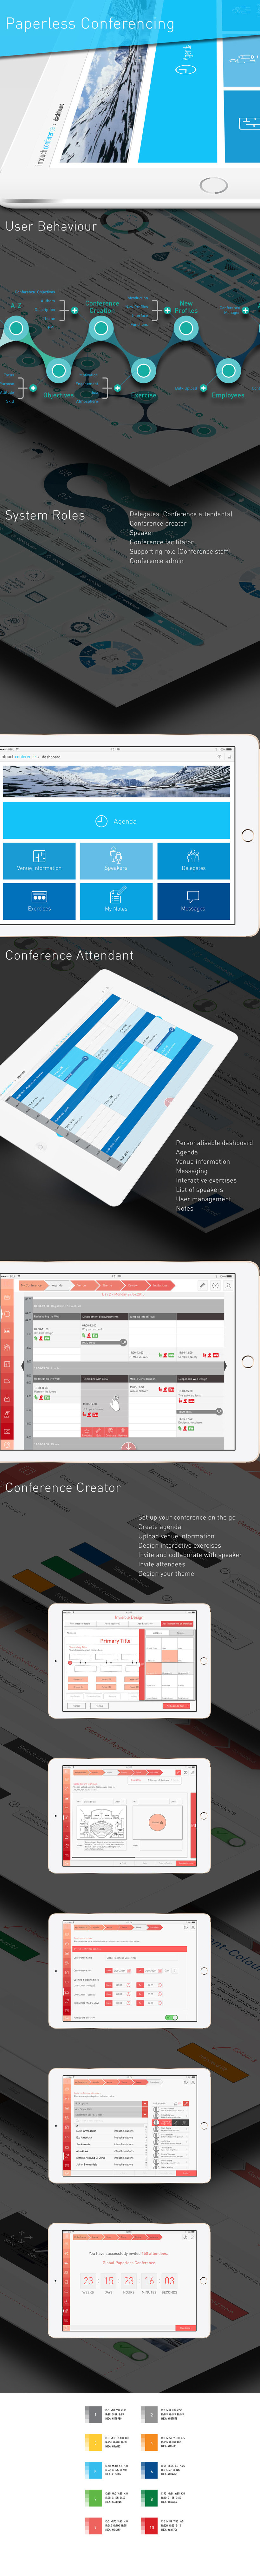 Paperless Conferencing App 1